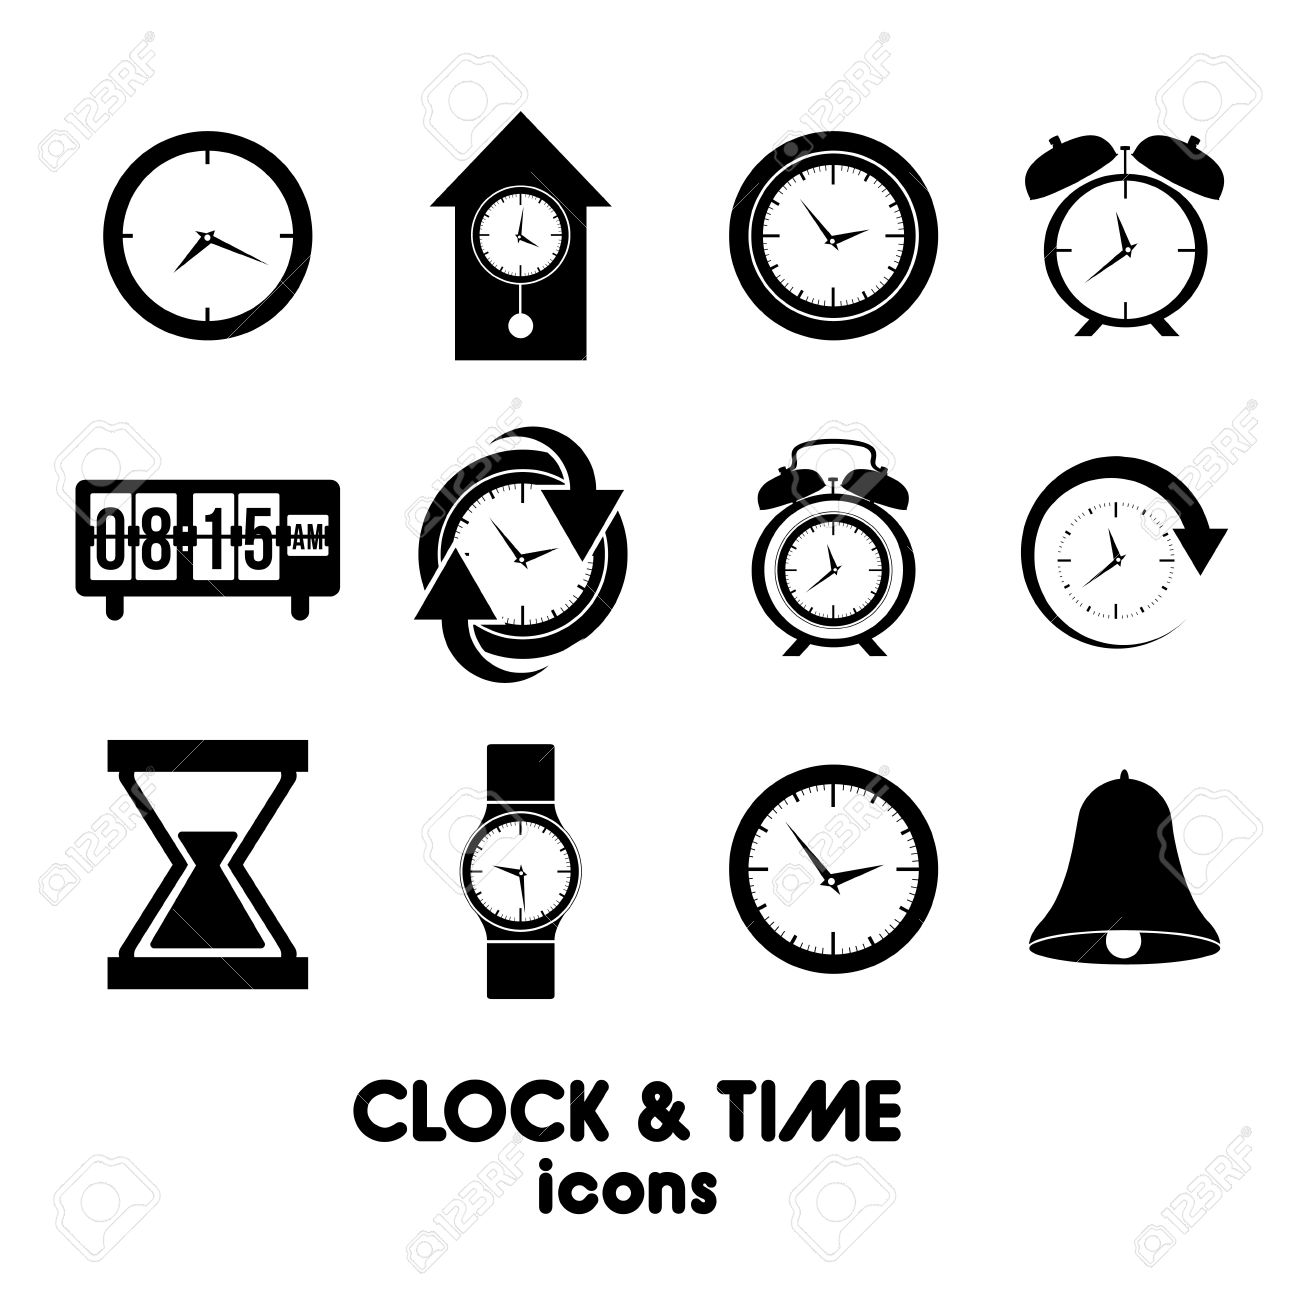 clock and time icons over white background vector illustration Stock Vector - 20192499